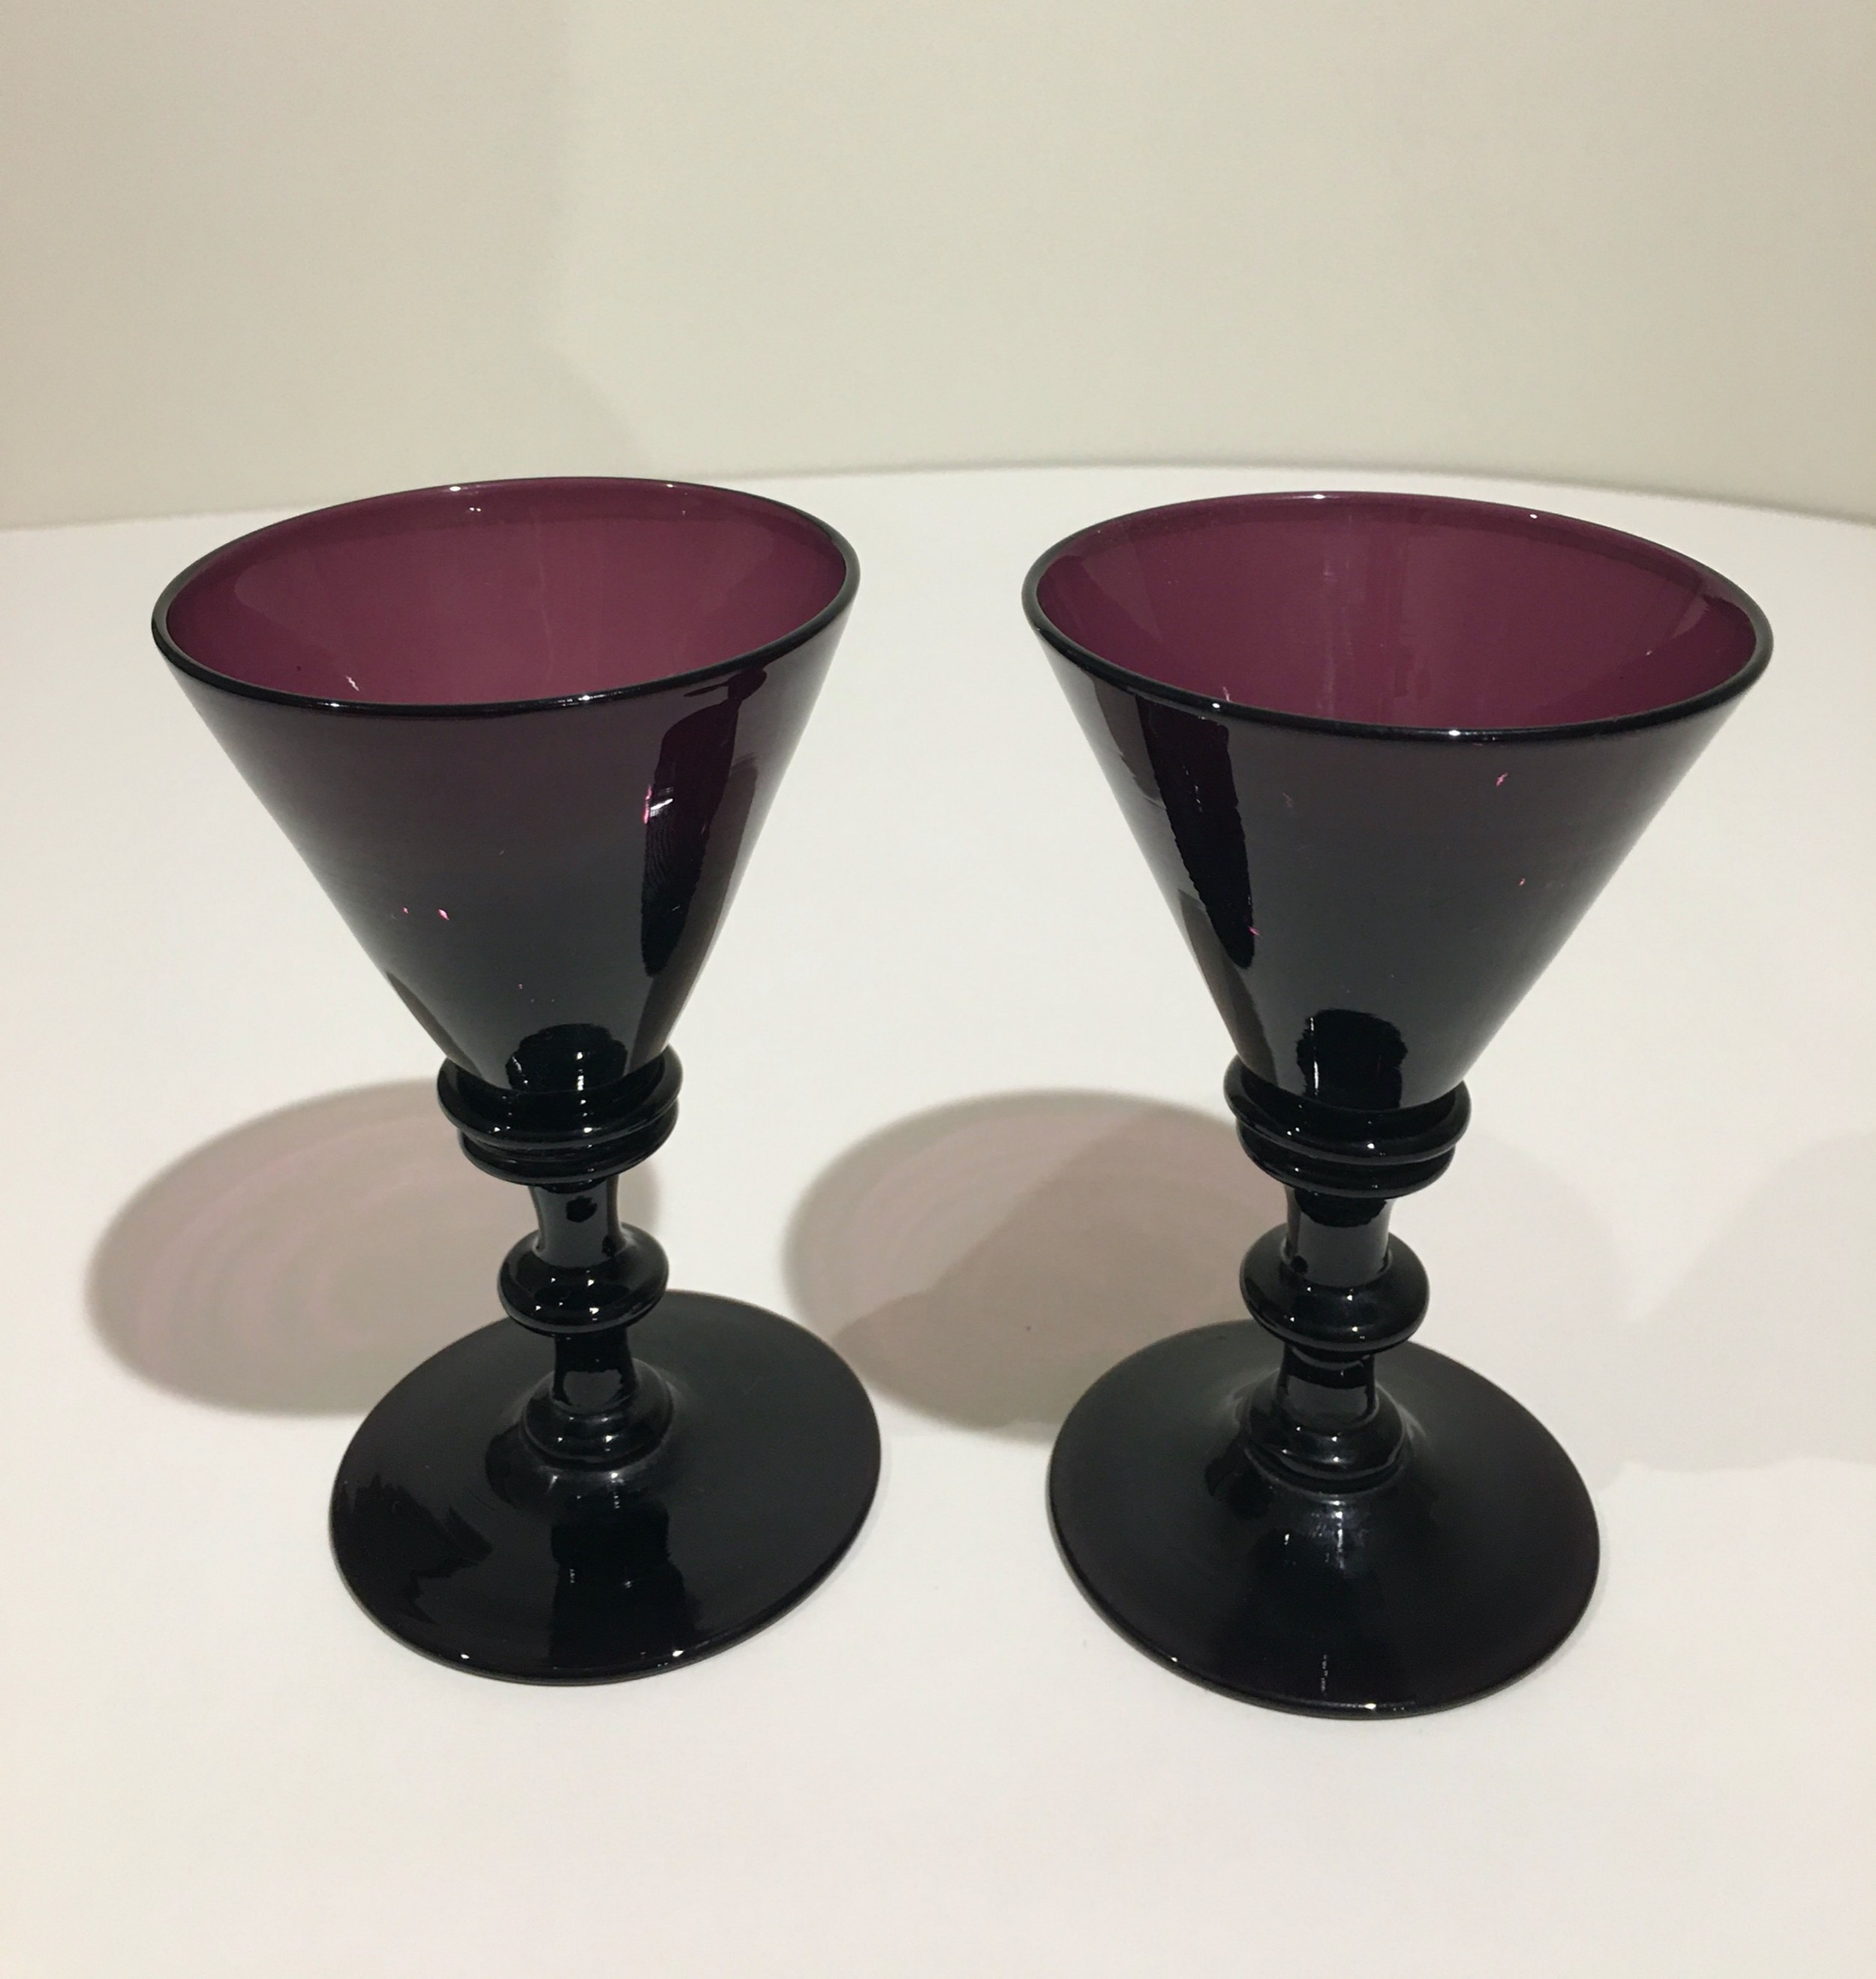 pair of regency period amethyst wine glasses